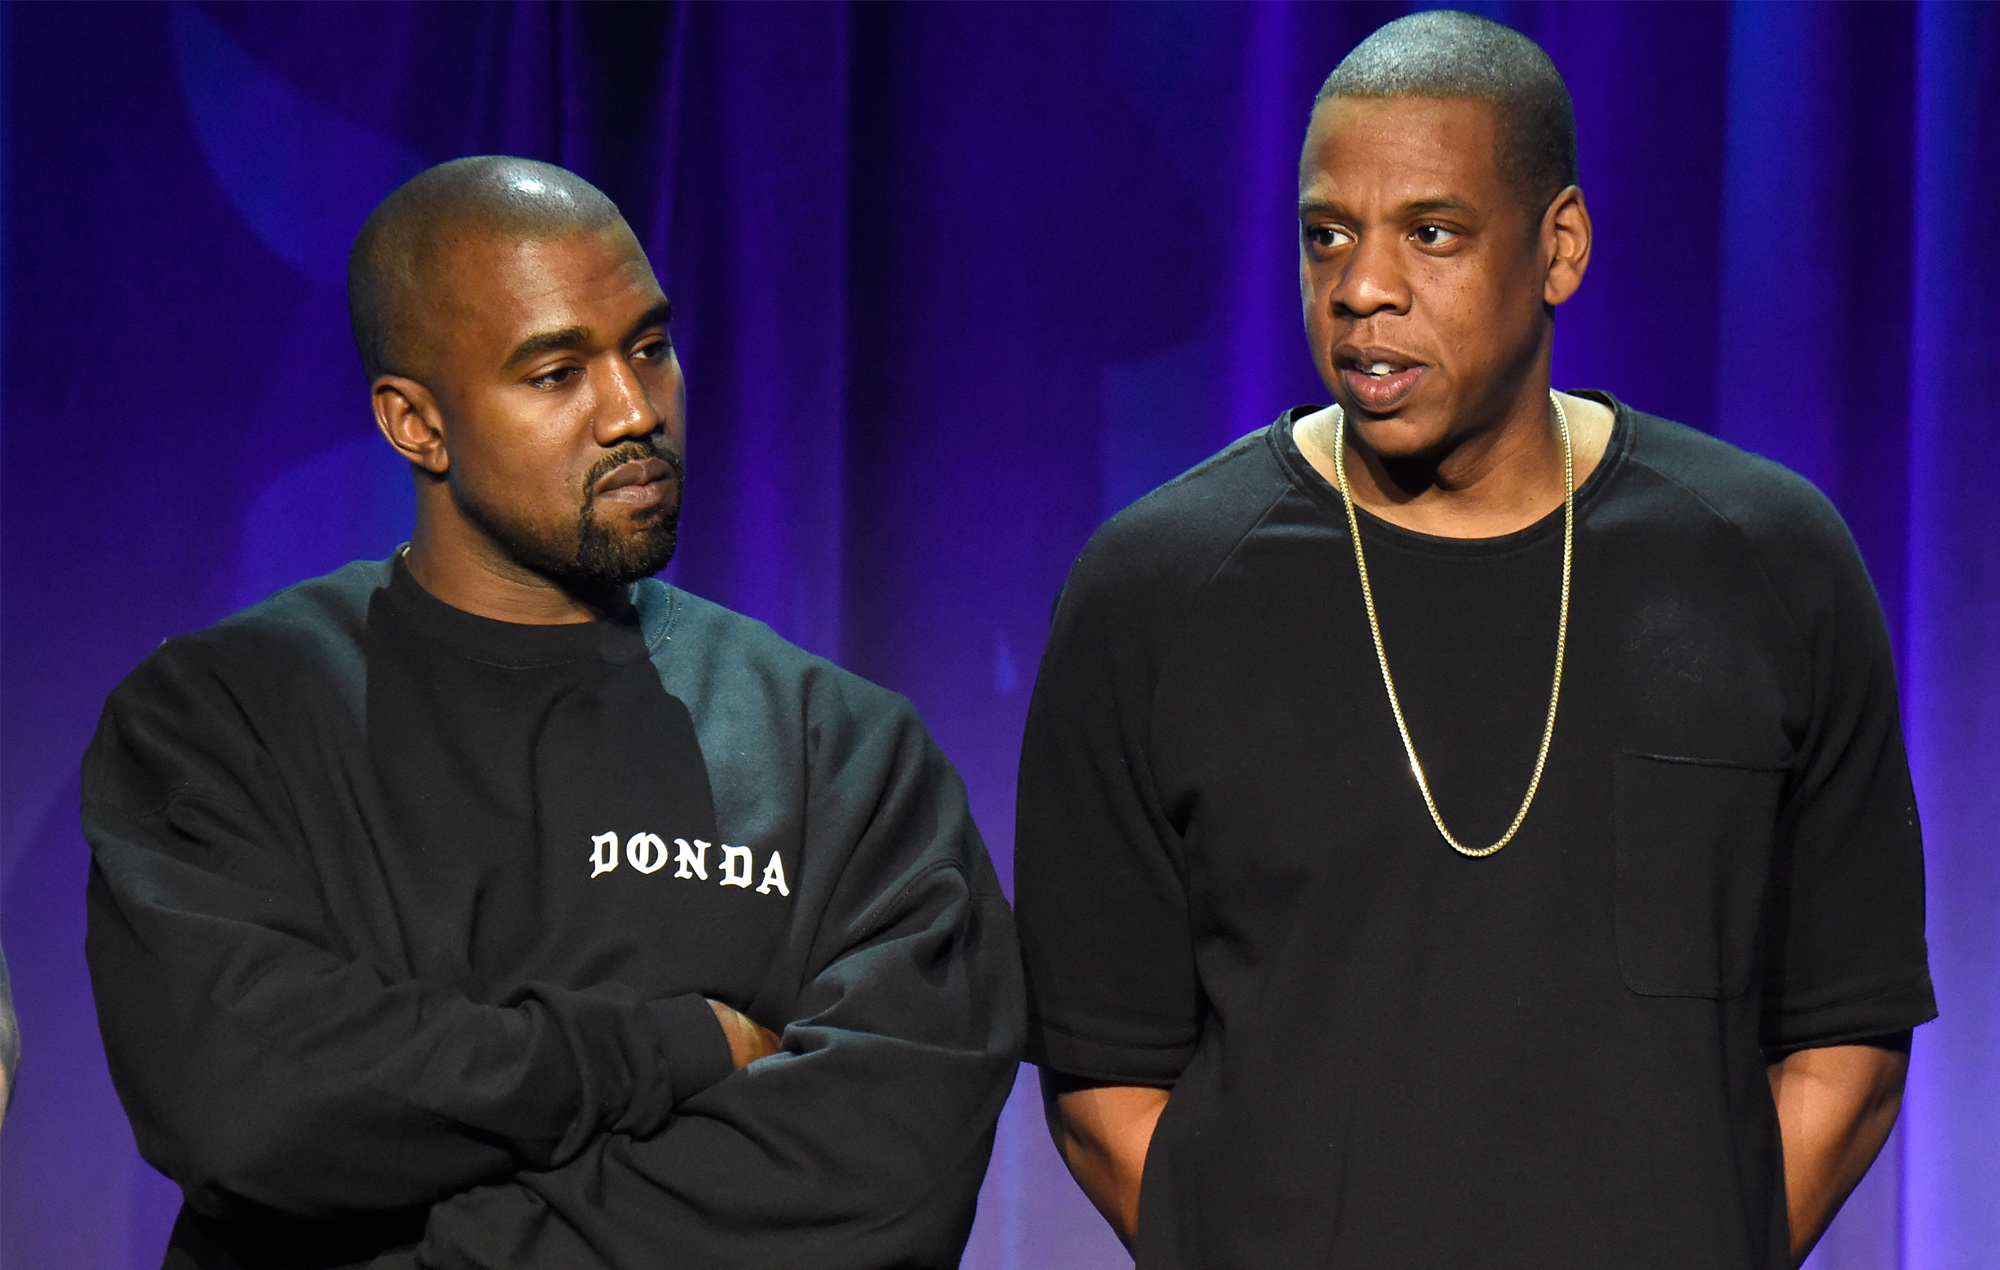 Kanye West previews Jay-Z feature on 'DONDA' album at listening event in Atlanta stadium